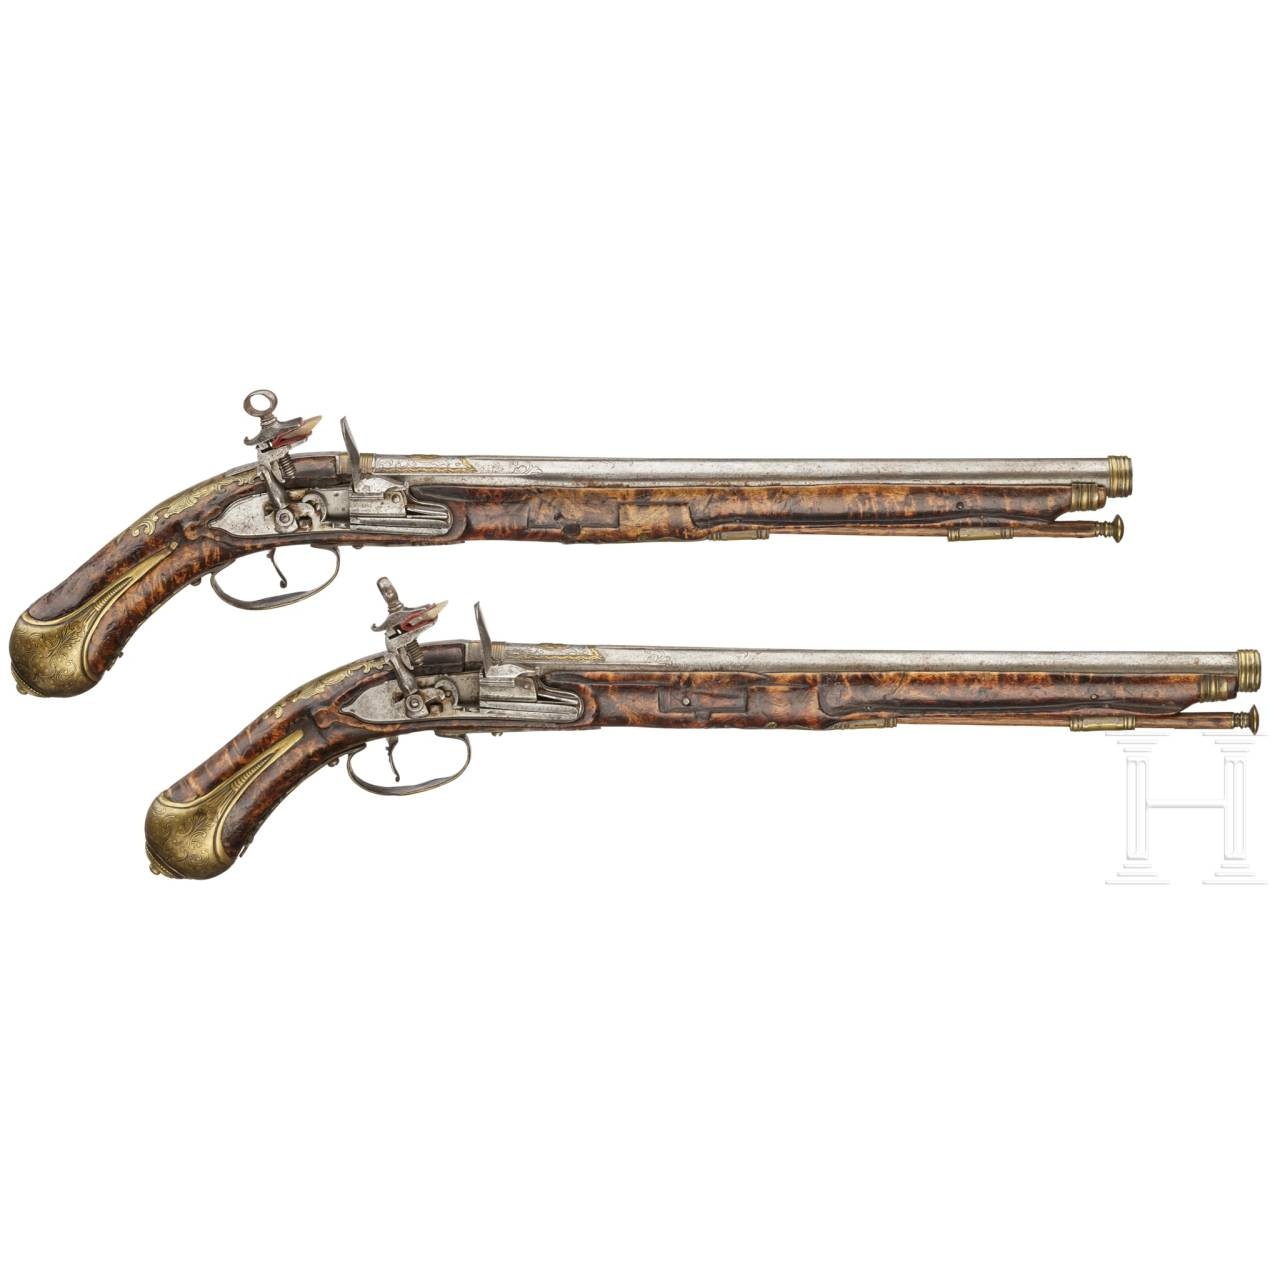 A pair of Miquelet pistols by Caltrani in Gardone Val Trompia, 1st half of the 18th century